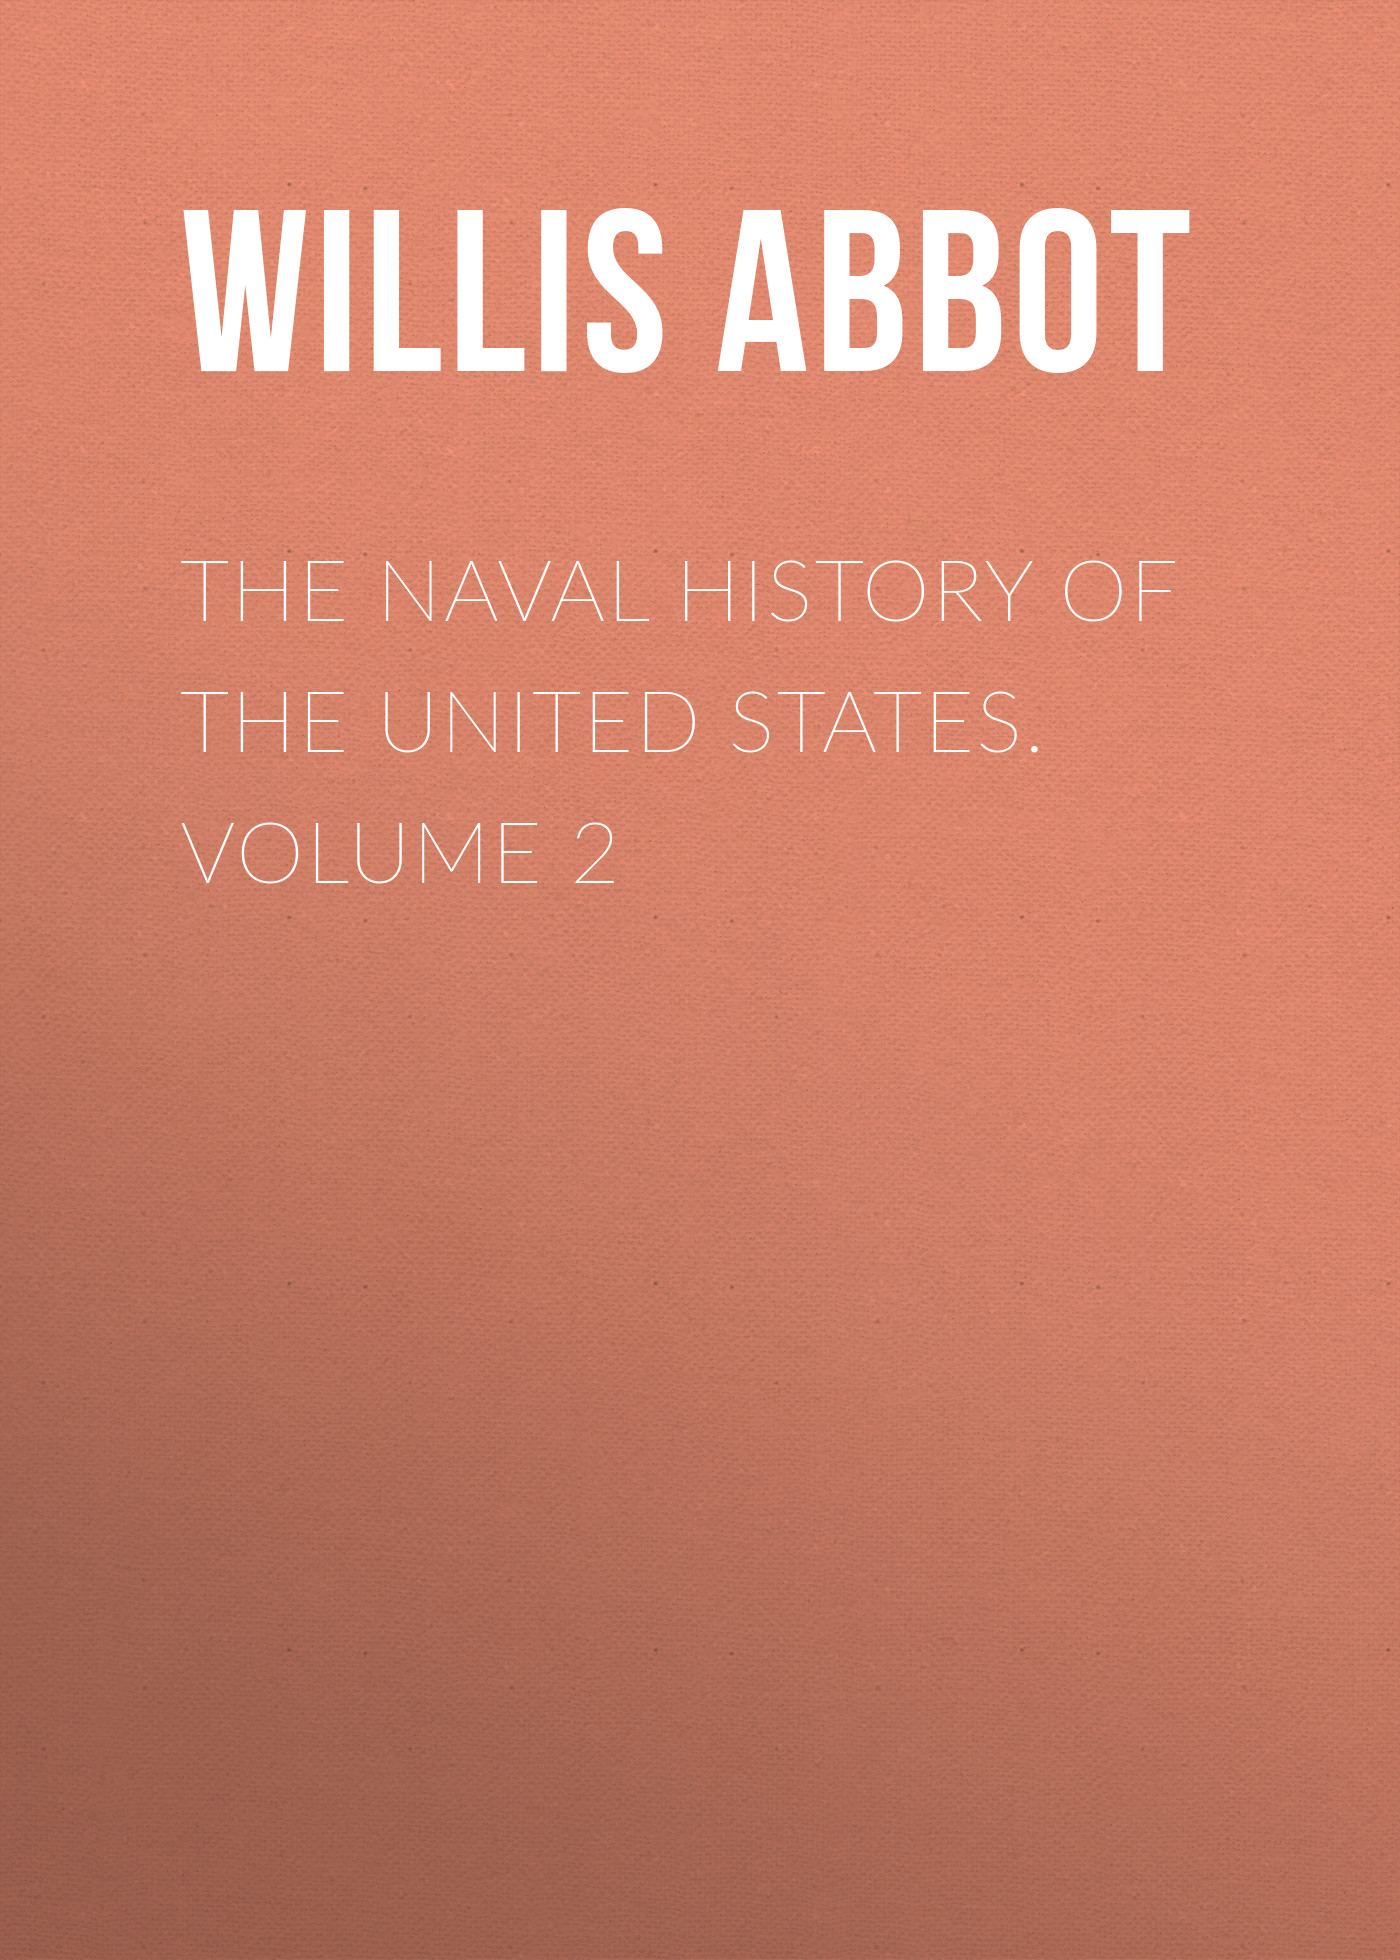 Abbot Willis John The Naval History of the United States. Volume 2 [zob] the united states bussmann nh2am 400nhm2b 400a 500v fuse fuse original authentic